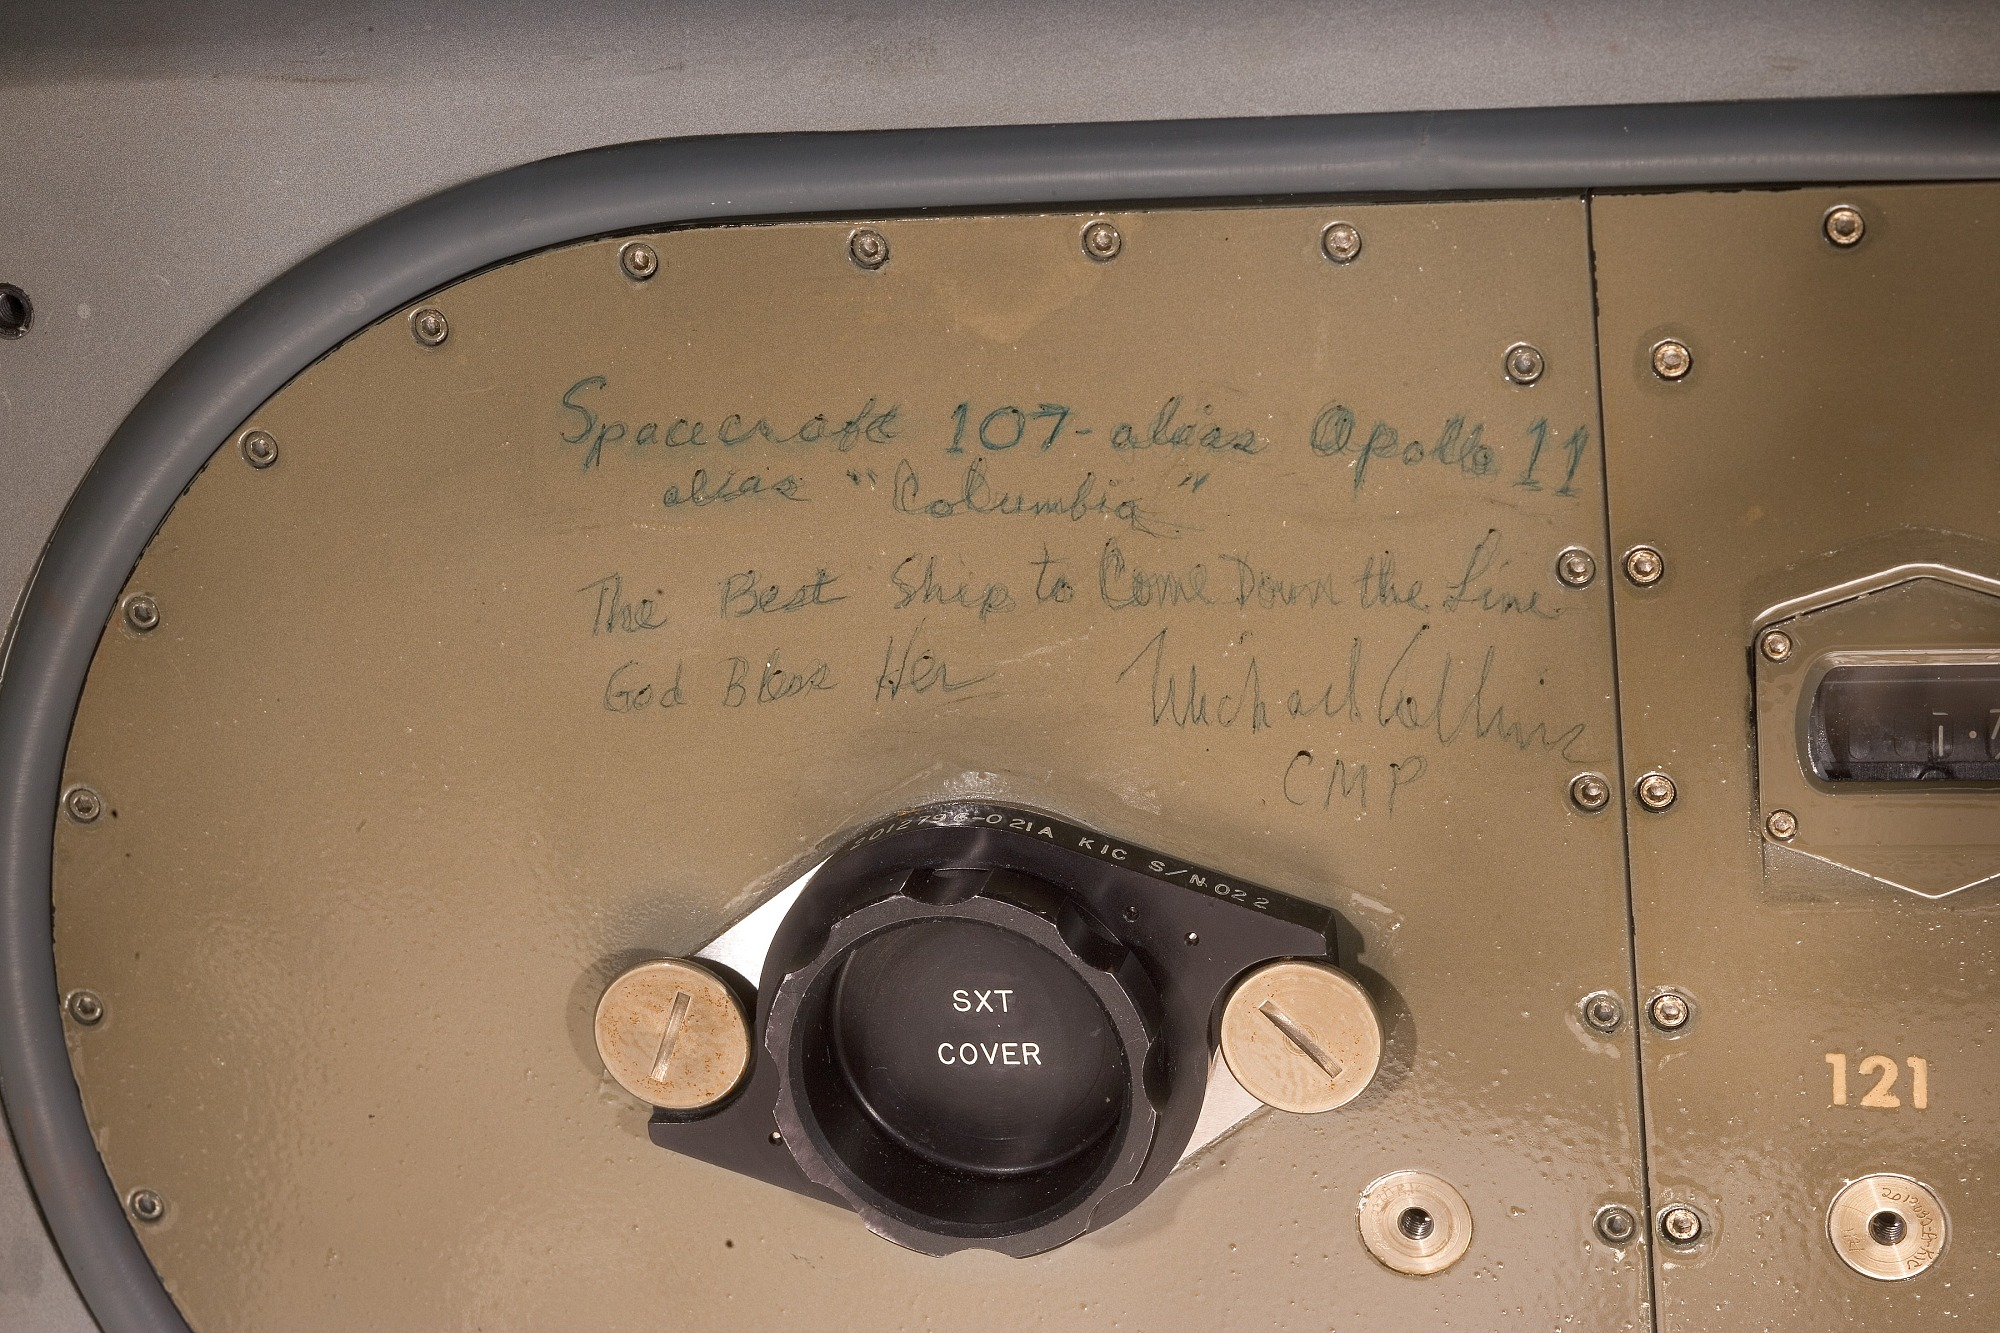 """Metal panel with rivets around the edge. Handwritten text in green ink reads: 'Spacecraft 107 – alias Apollo 11 / alias """"Columbia"""" / The Best Ship to Come Down the Line / God Bless Her / Michael Collins / CMP'."""